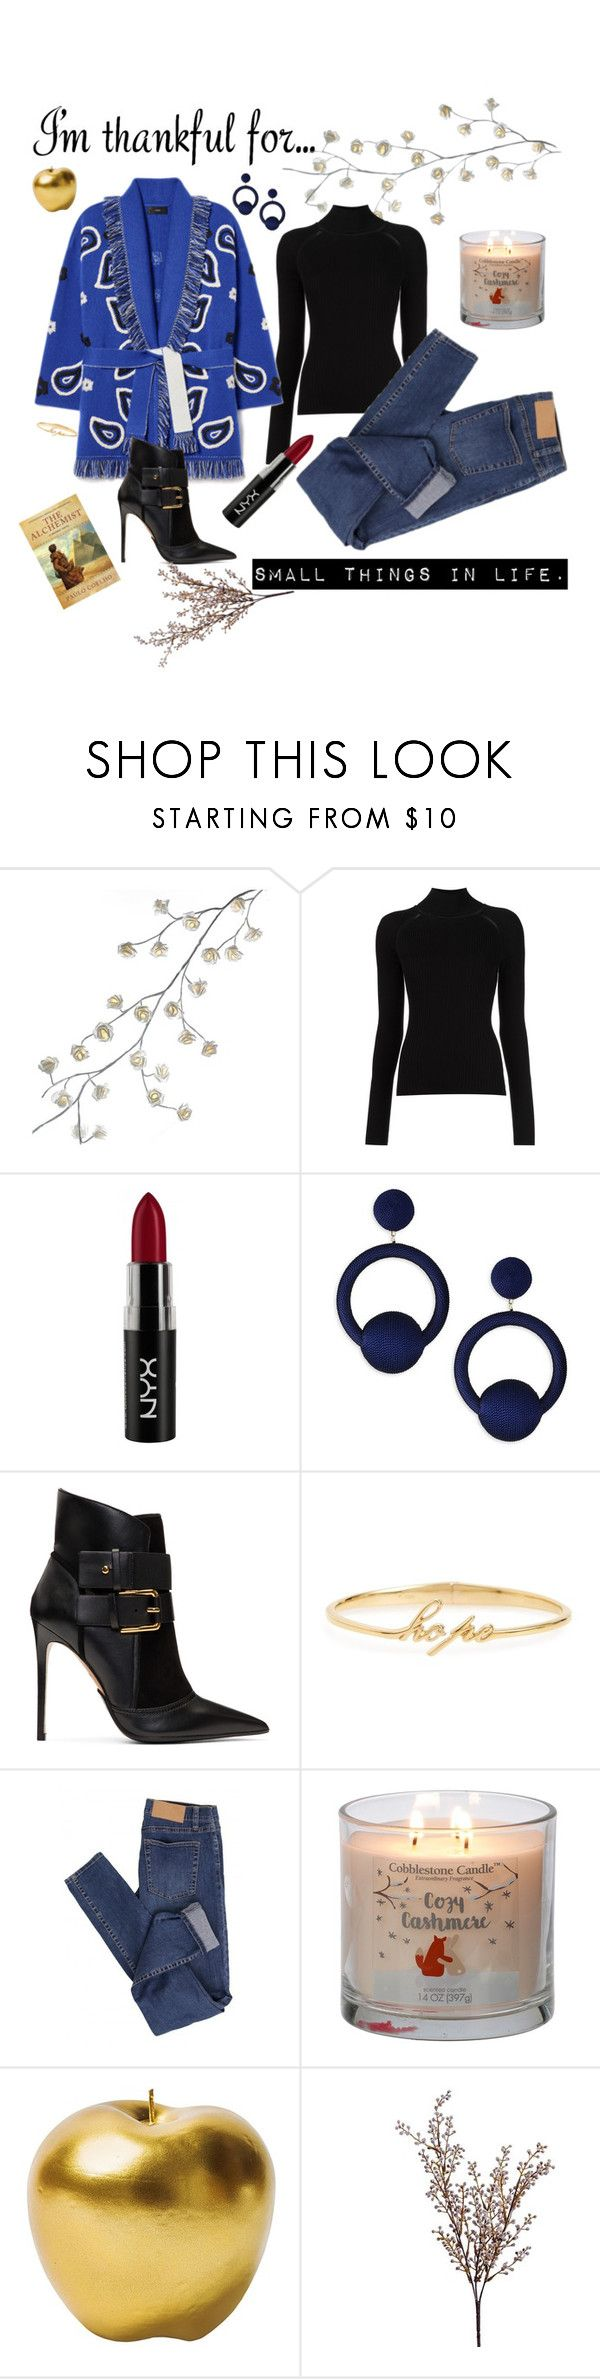 """Thankful for..."" by laislabonita88 ❤ liked on Polyvore featuring Kurt Adler, Misha Nonoo, NYX, Rebecca de Ravenel, Balmain, Judith Jack, Cheap Monday, Bitossi, Wyld Home and thanksgiving"